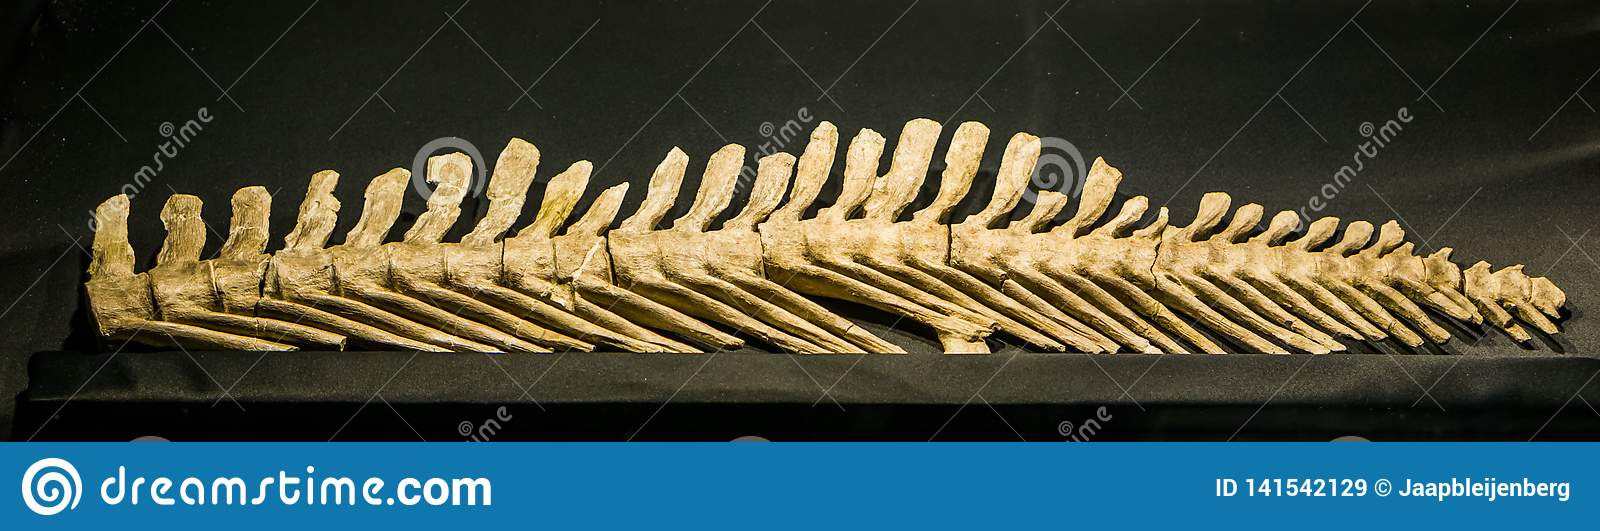 The back spine of a extinct mosasaurus lemonnieri, a aquatic lizard that lived during the cretaceous period in europe and America